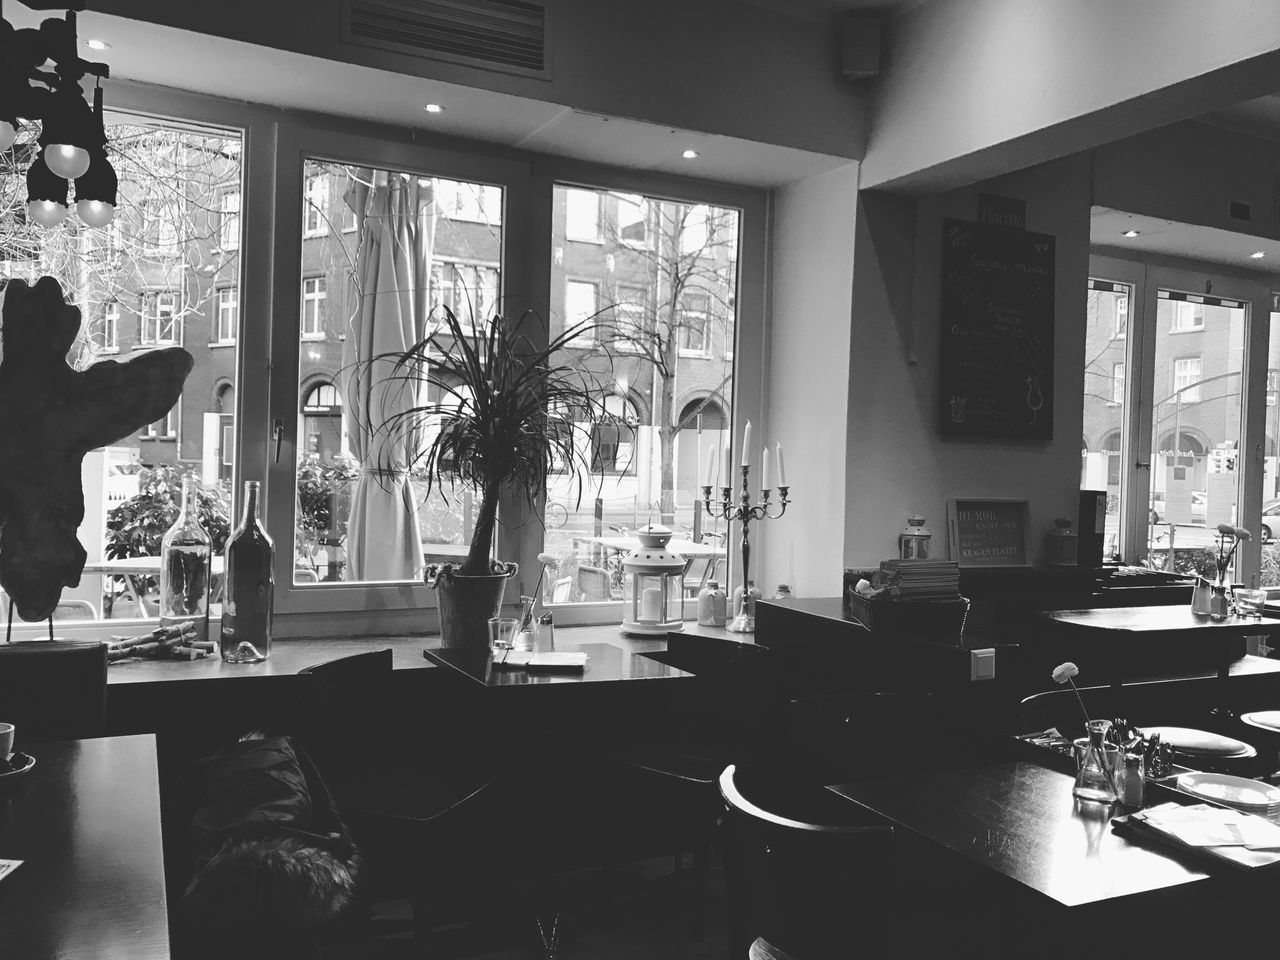 In a Restaurant Indoors  Table Window Home Interior Tree No People Chair Dining Table Day Restaurant Lifestyle Photography Lifestyle Black & White Black And White Street Life Hannover Indoor Life Scenics Germany Drinking Eating Tables Room Decor Enjoying Life